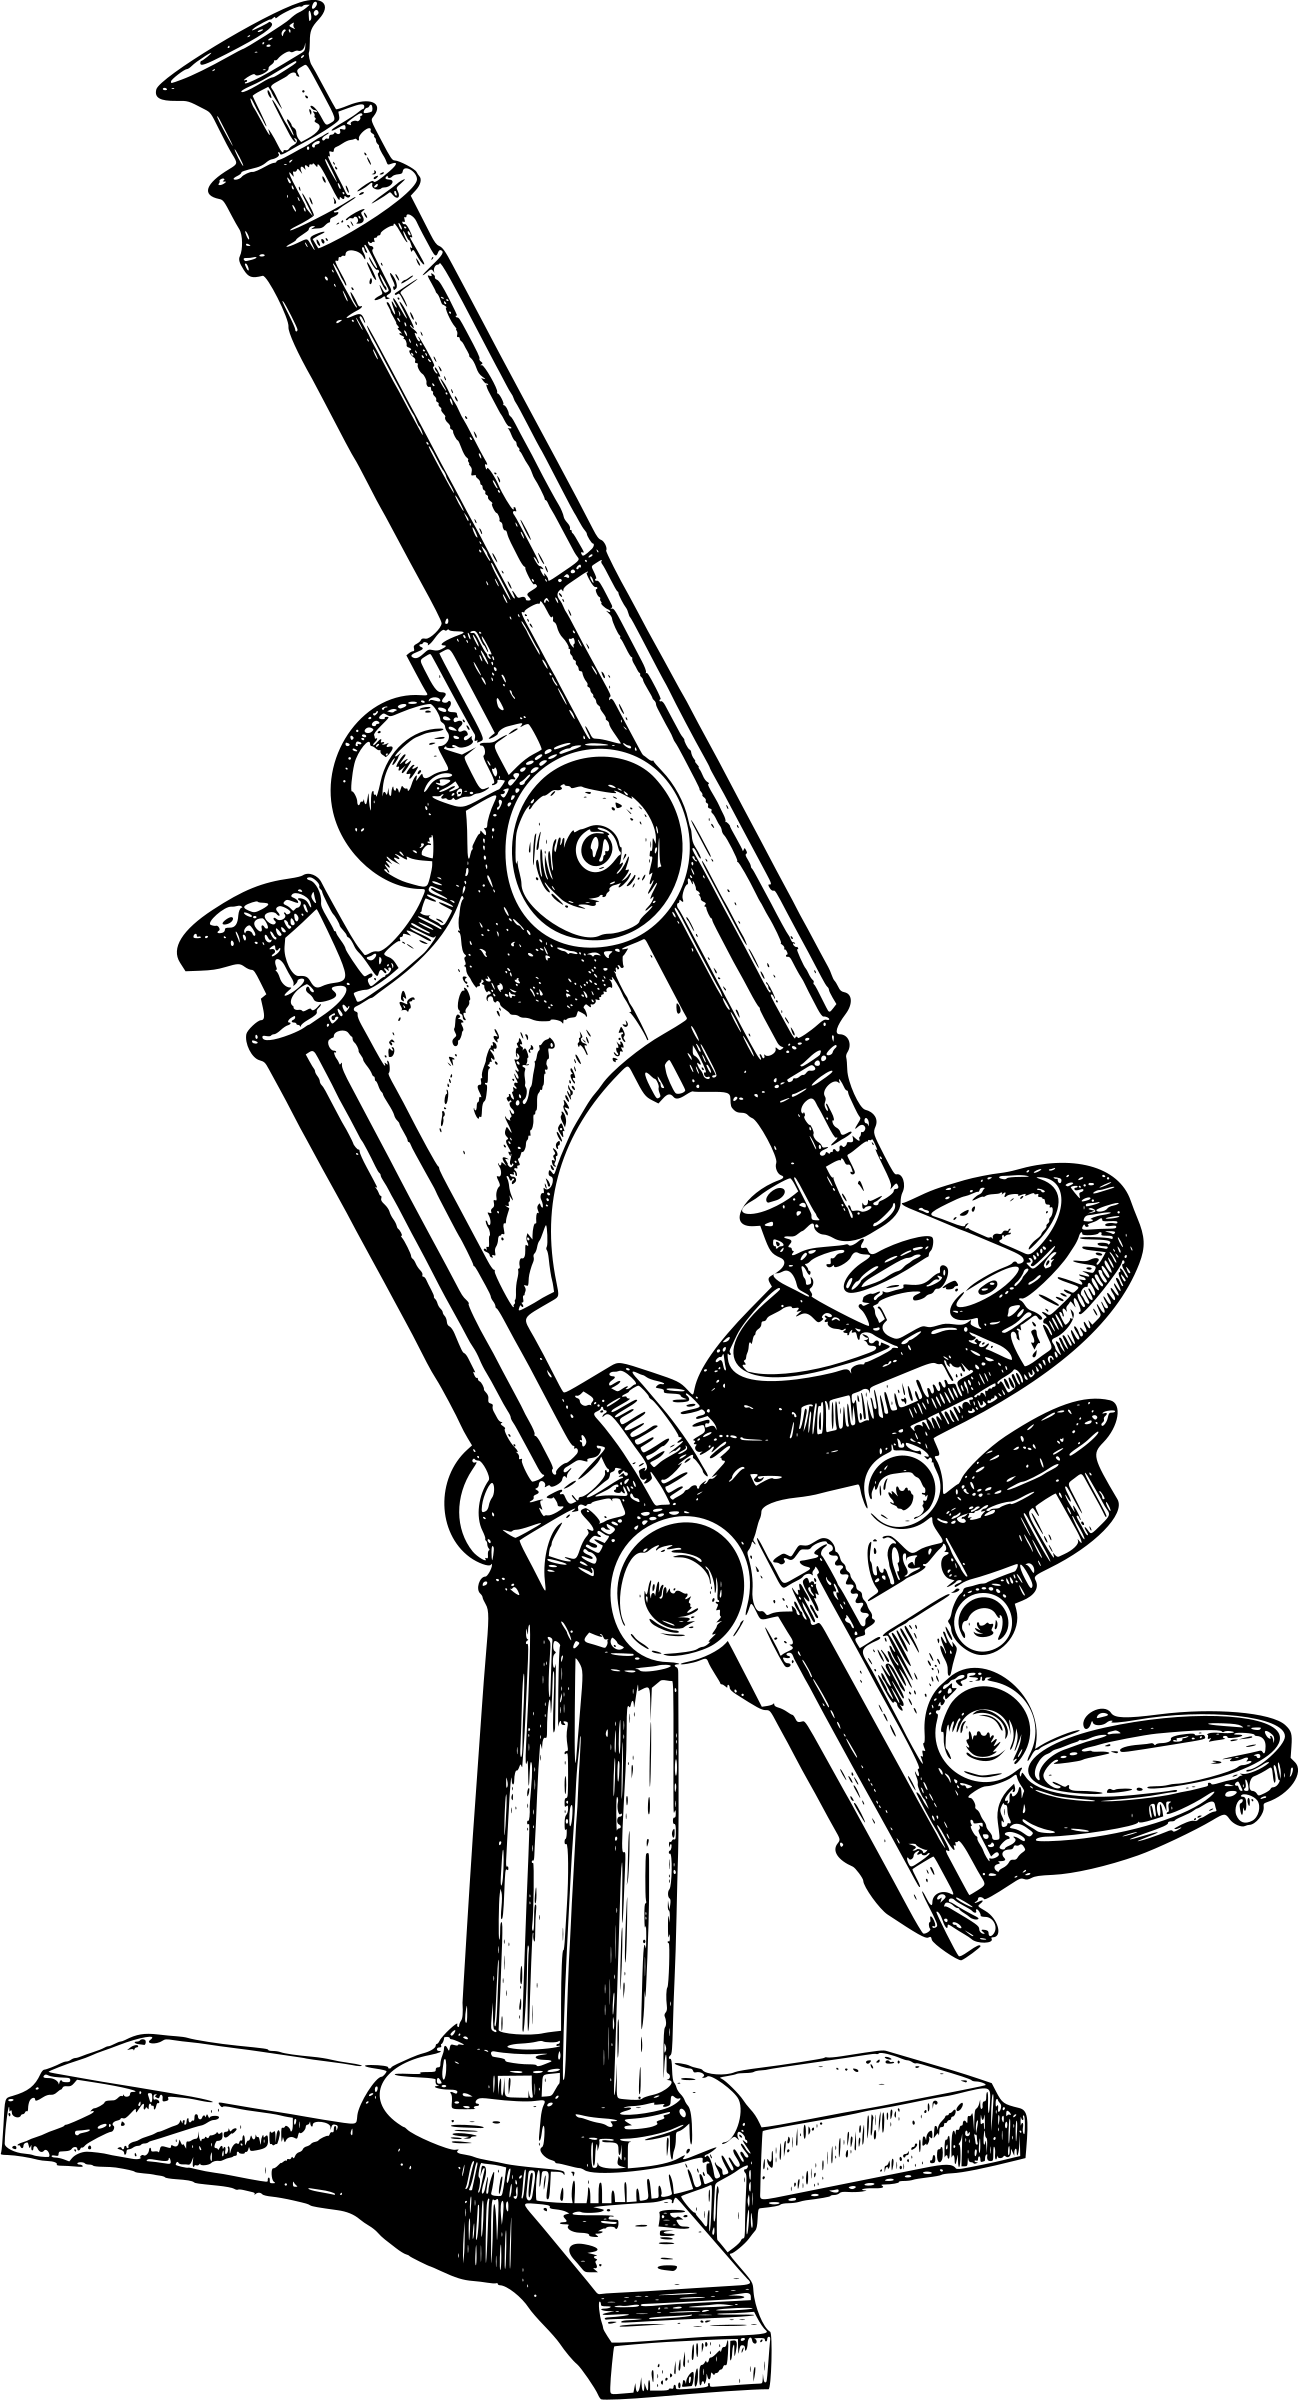 Microscope transparent png stickpng. Clarinet clipart silhouette